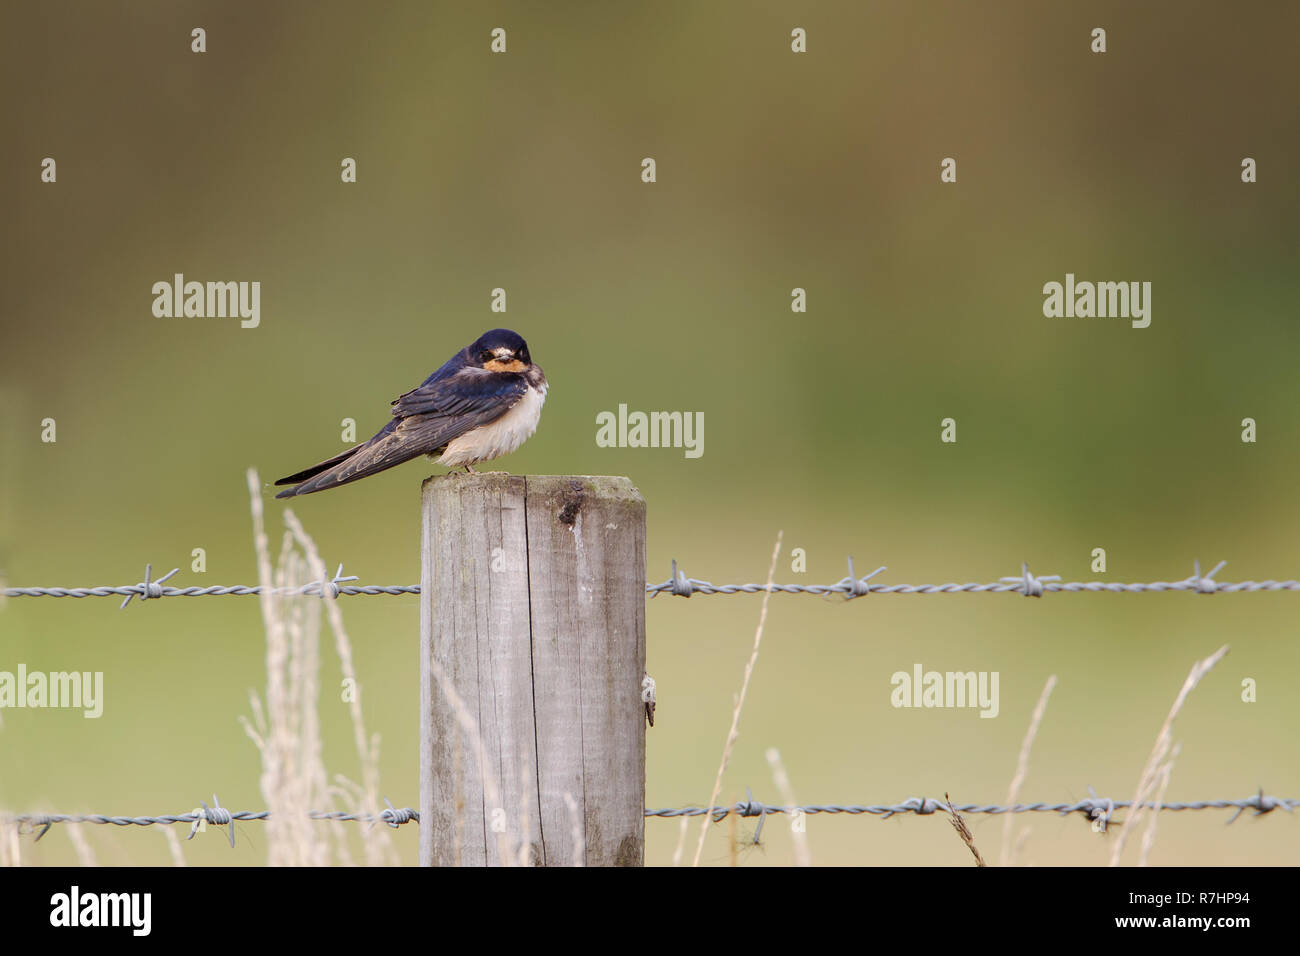 Swallow Hirundo rustica perching in profile on a wooden fence post against a diffuse green background - Stock Image